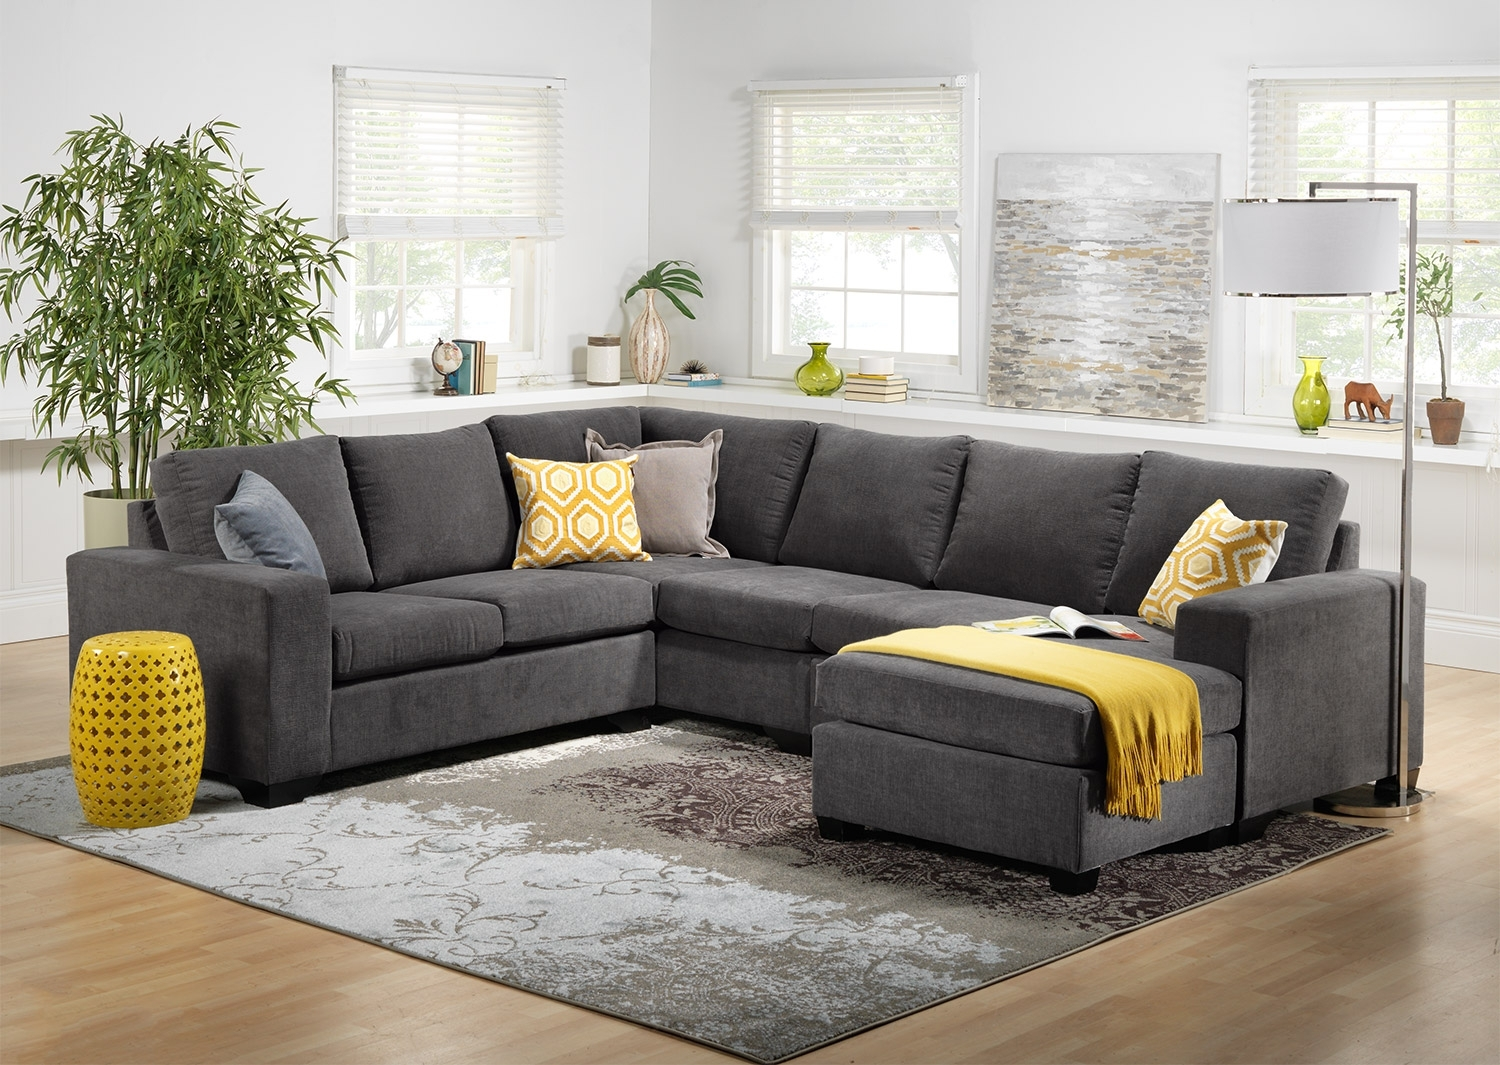 Danielle 3 Piece Sectional With Right Facing Corner Wedge – Grey With Regard To Sectional Sofas At Bc Canada (View 7 of 10)